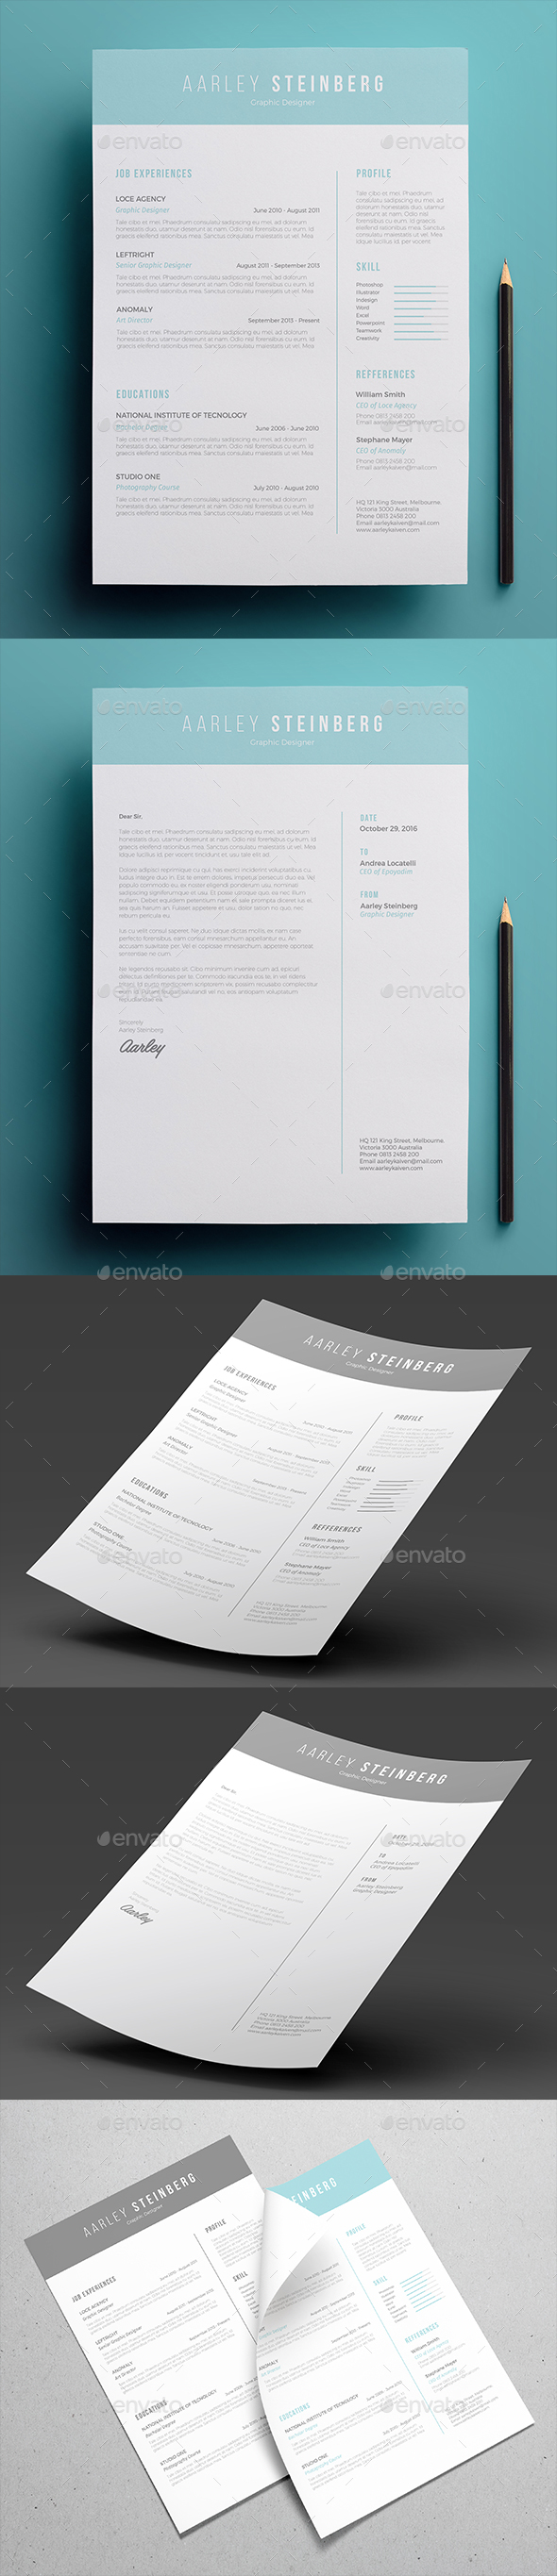 minimalist resume 03 by aarleykaiven graphicriver